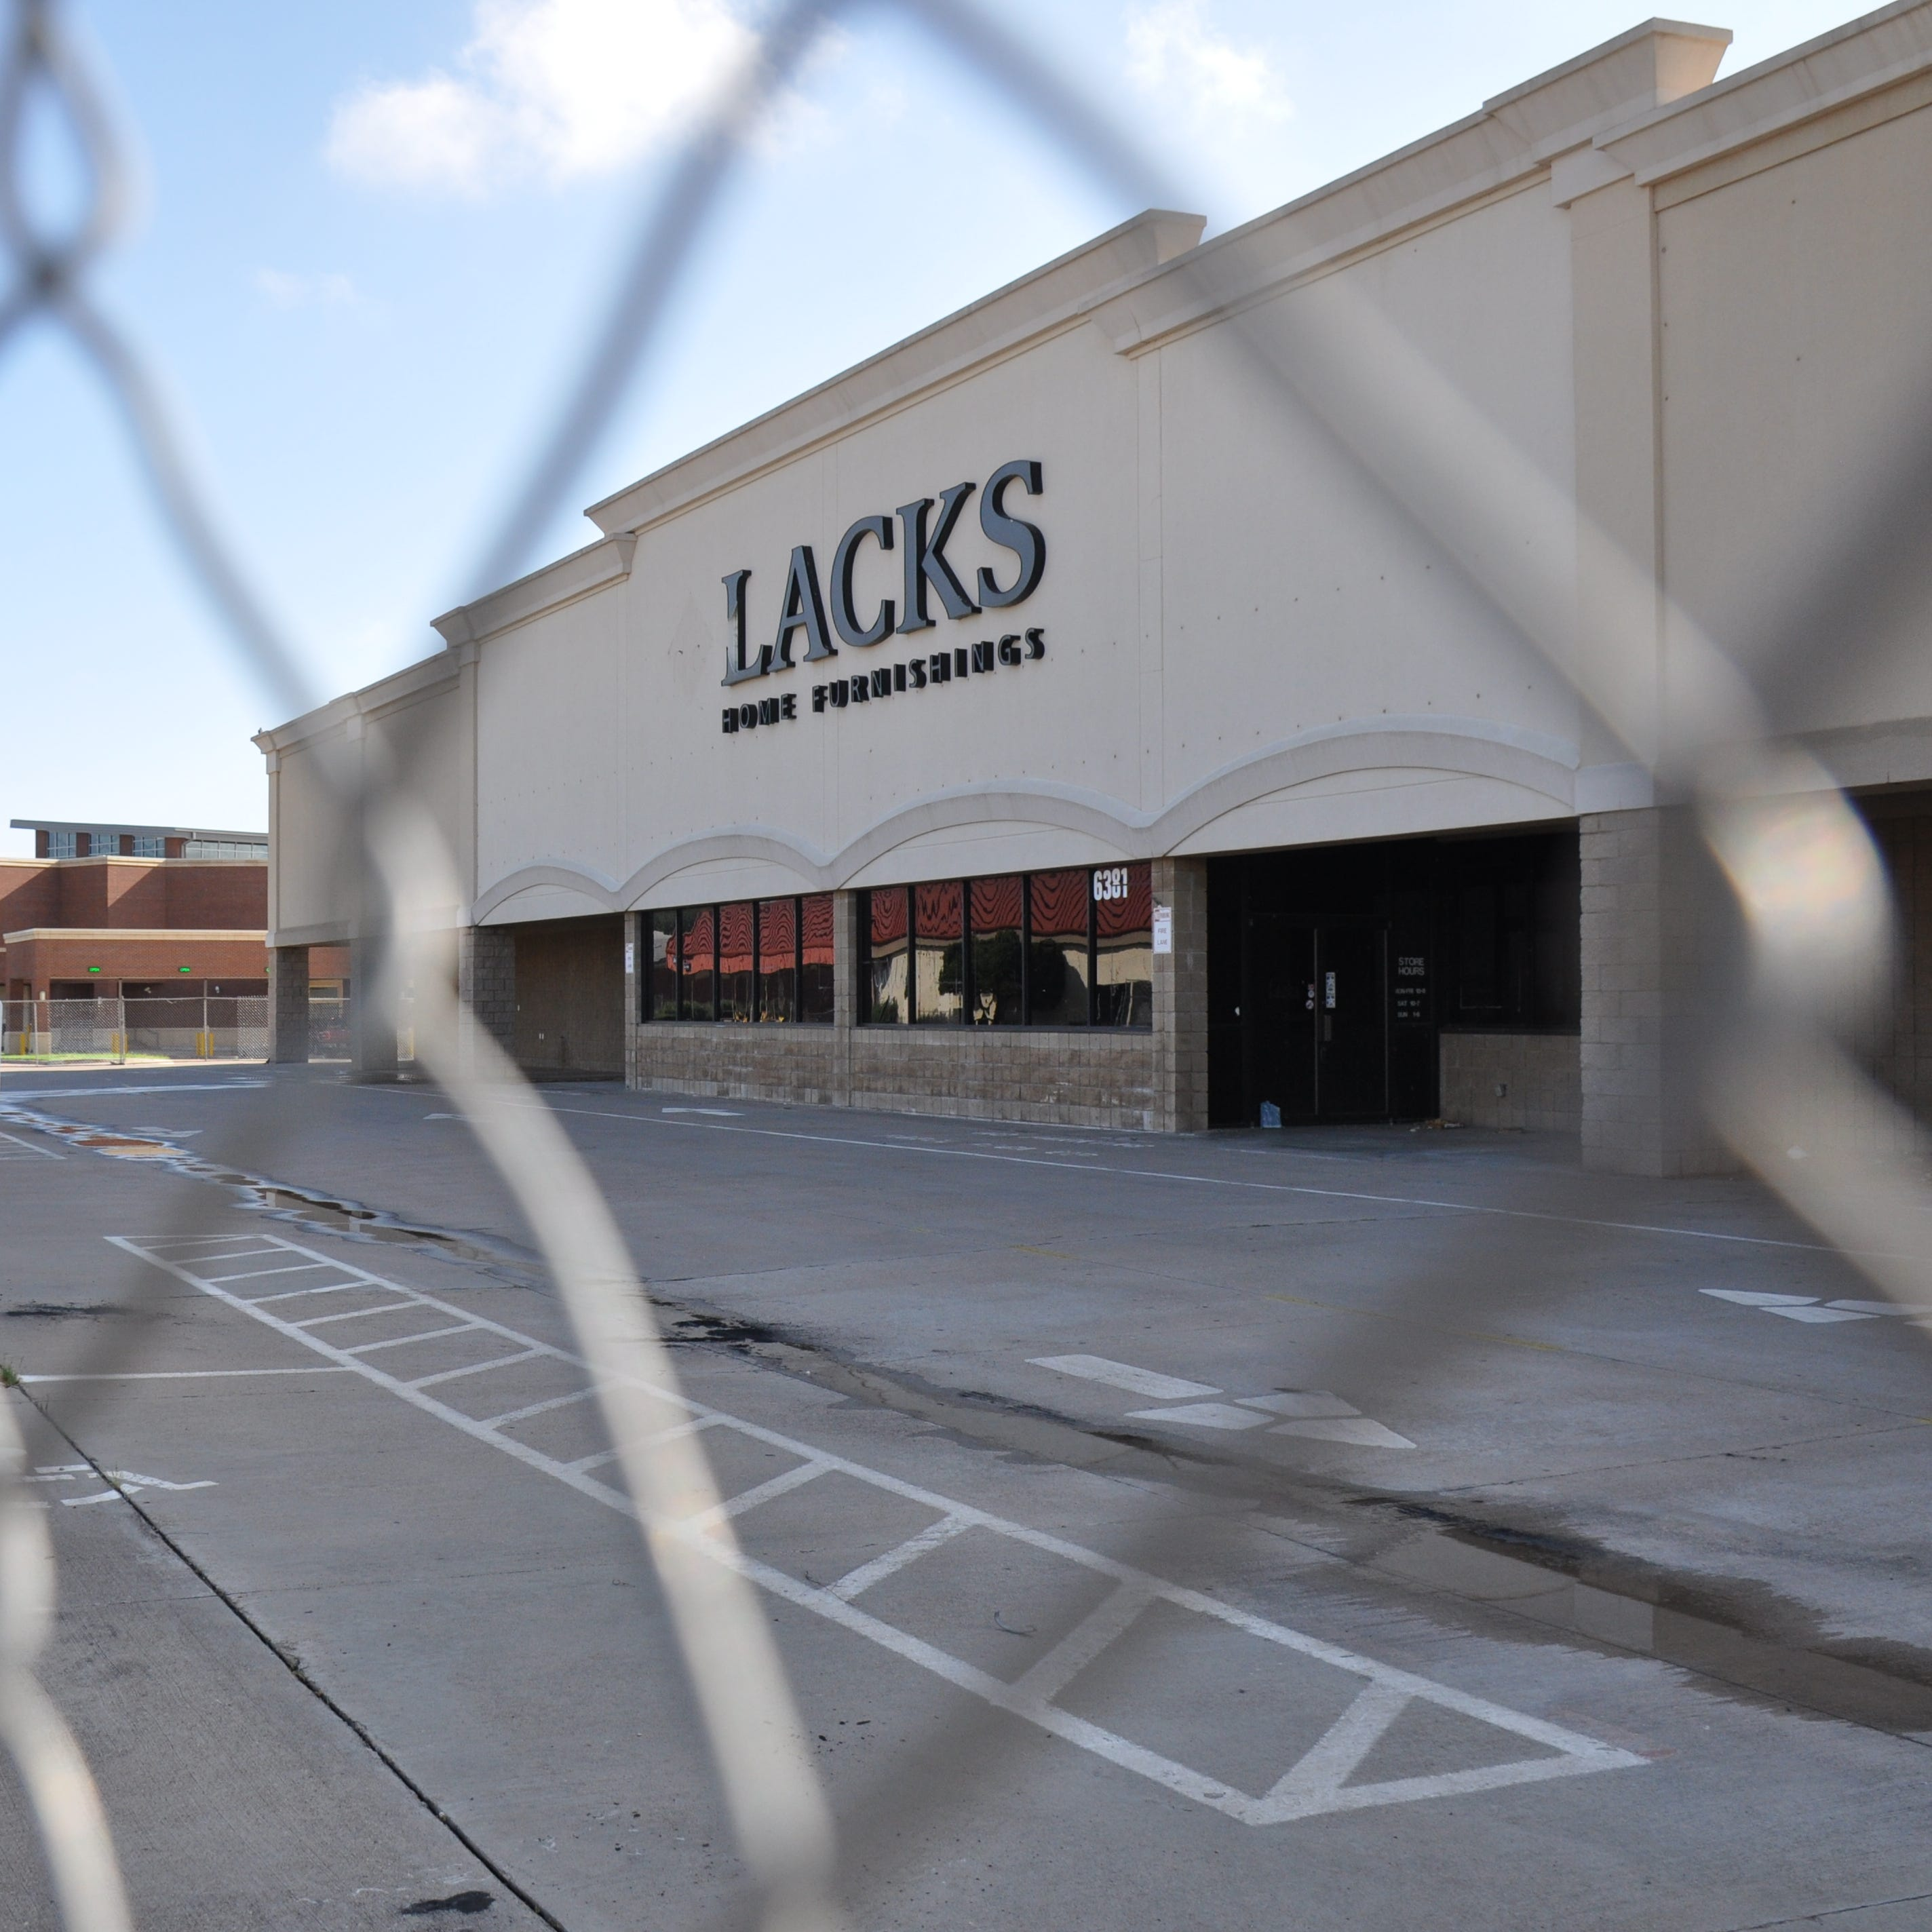 Lack's, bank building owned by H-E-B to be torn down